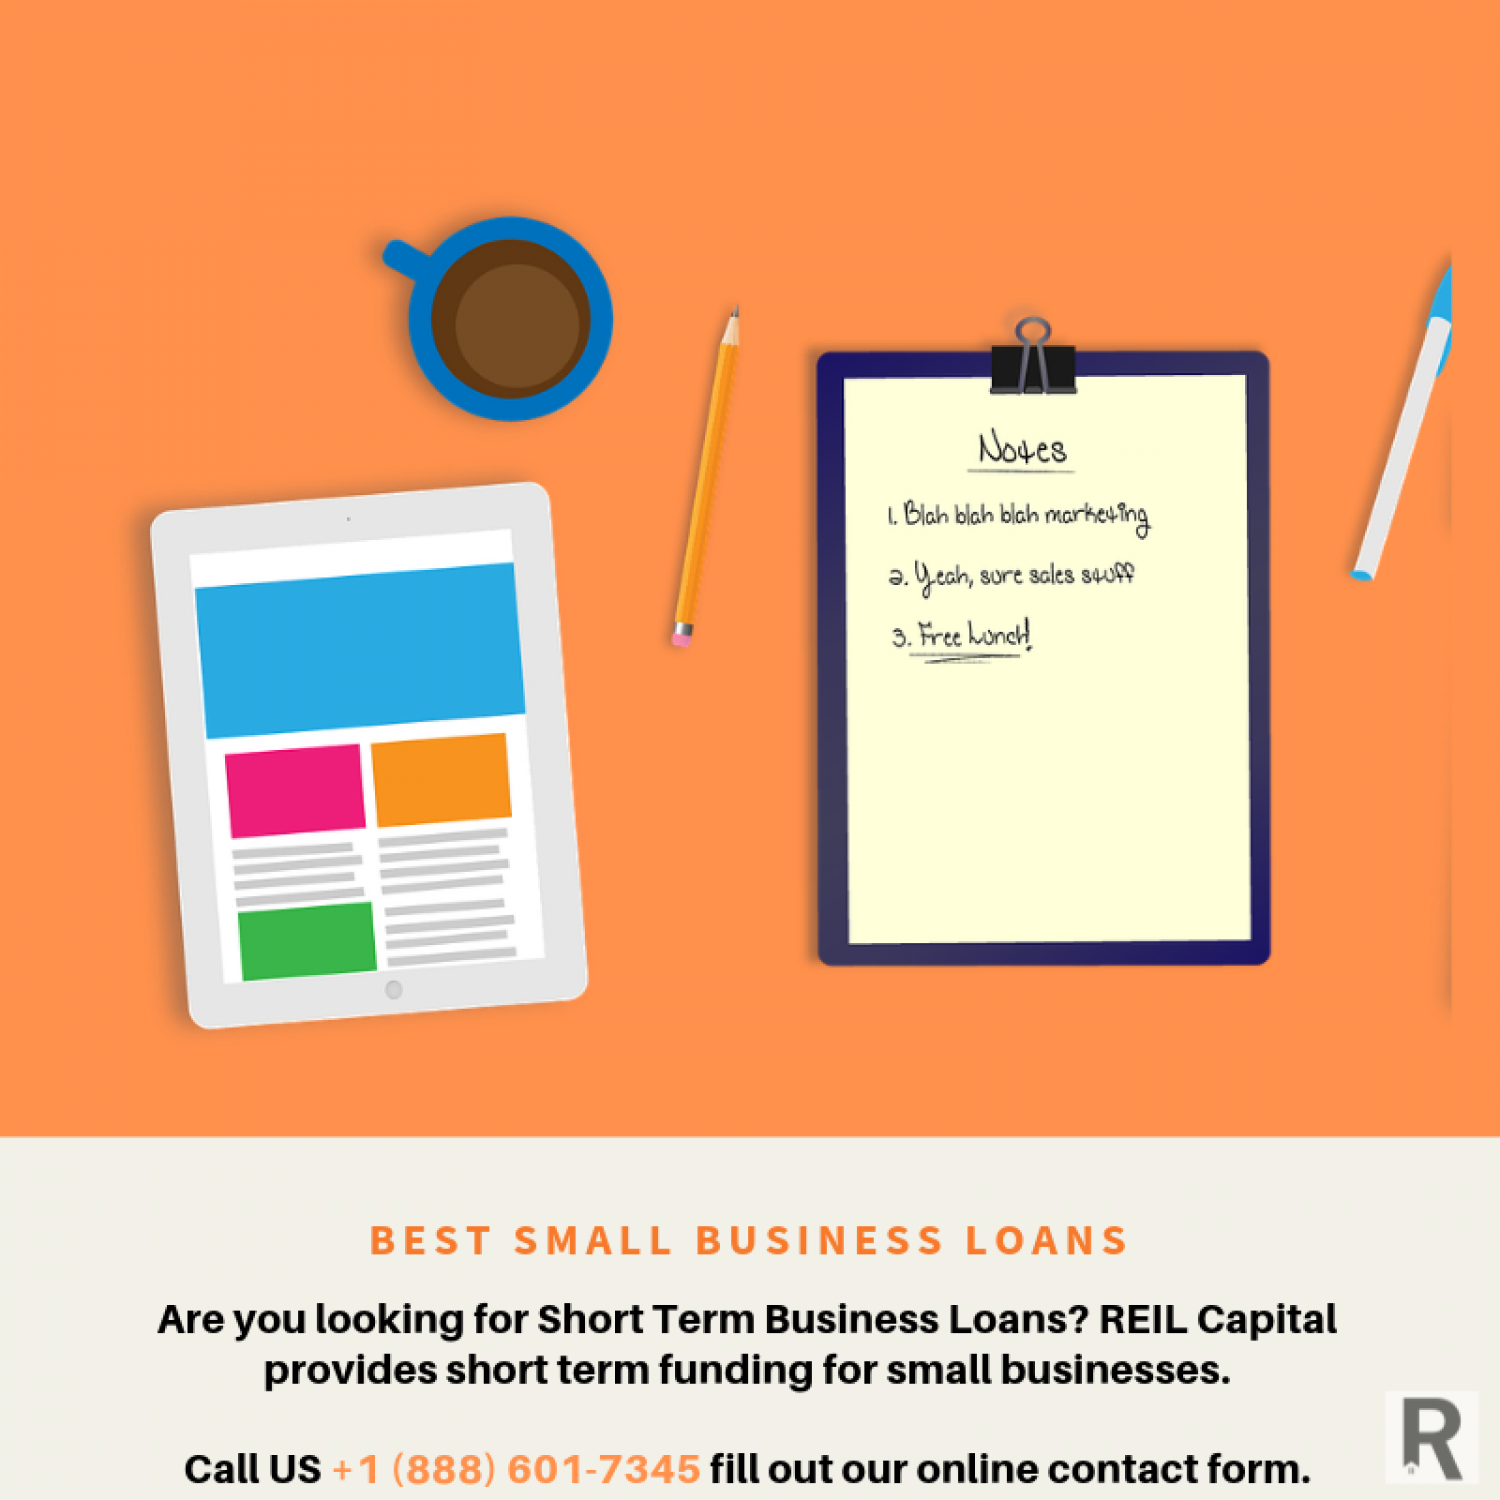 Best Short-Term Small Business Loans for 2019 Infographic